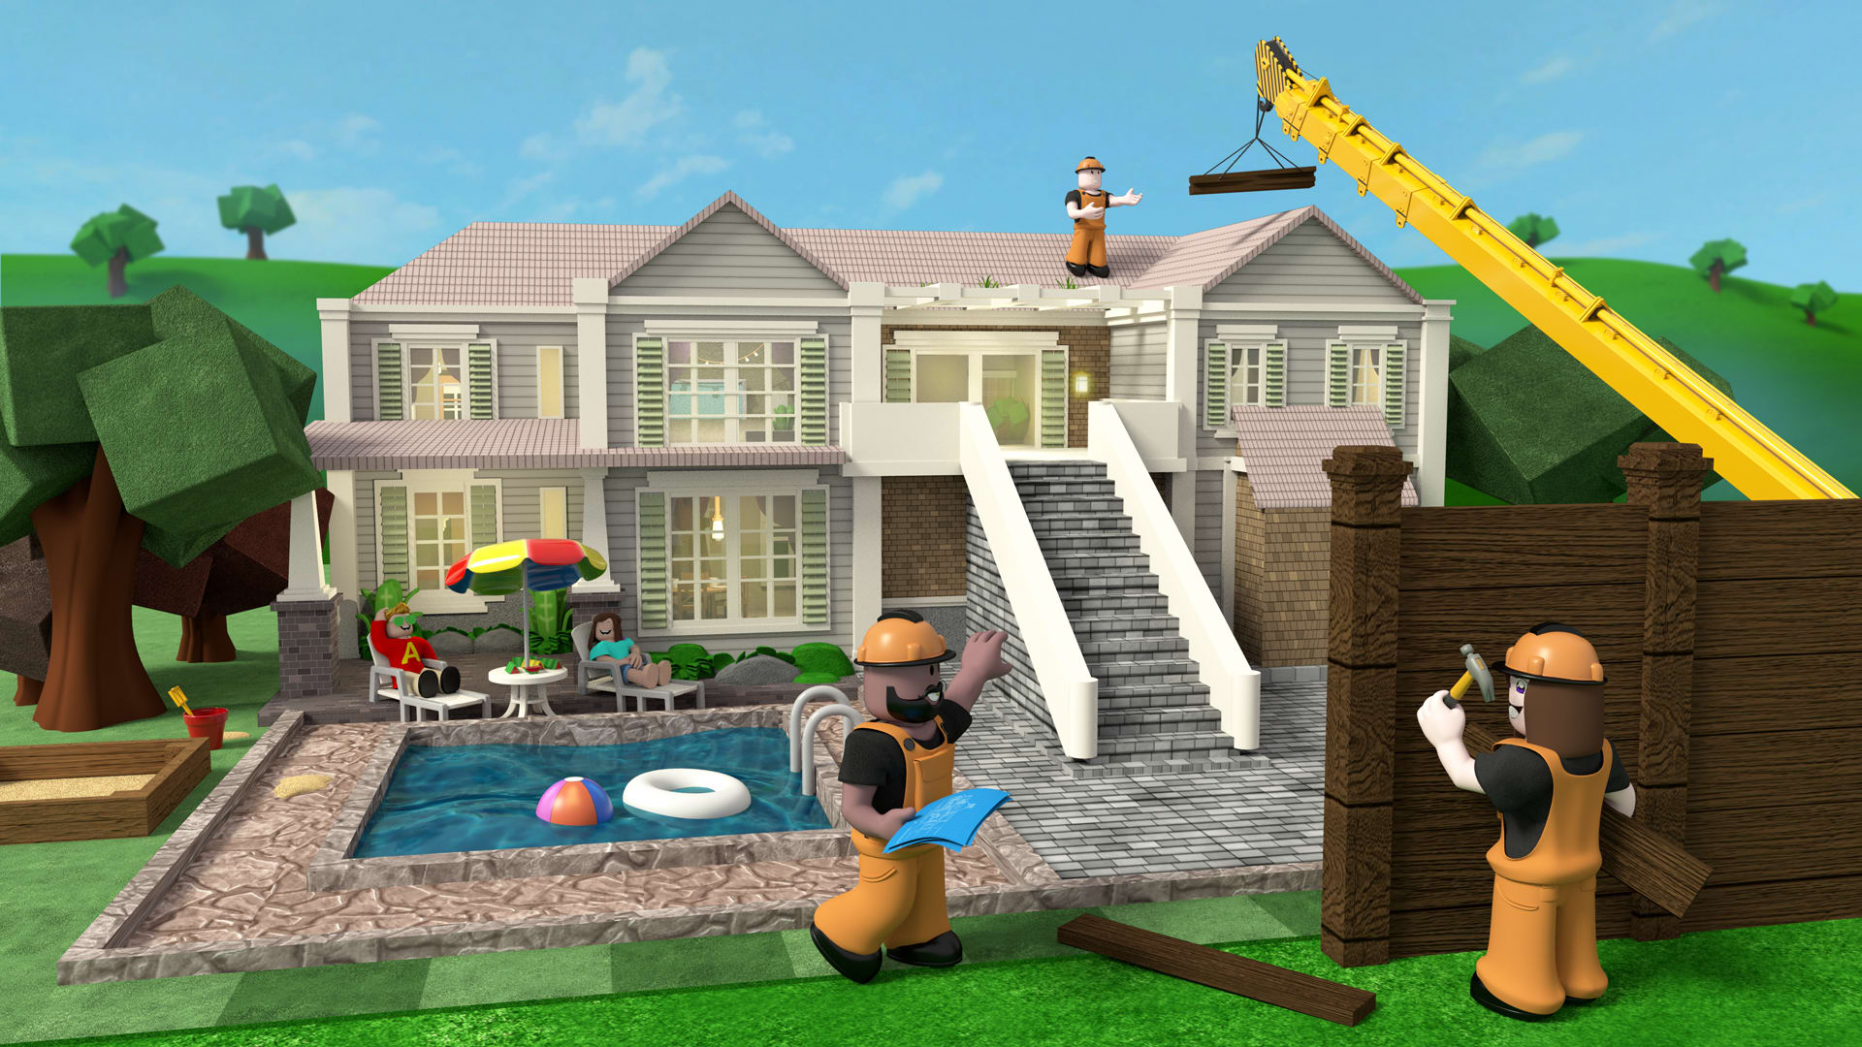 Roblox is seeing a surge during coronavirus shelter-in-place - backyard ideas in bloxburg